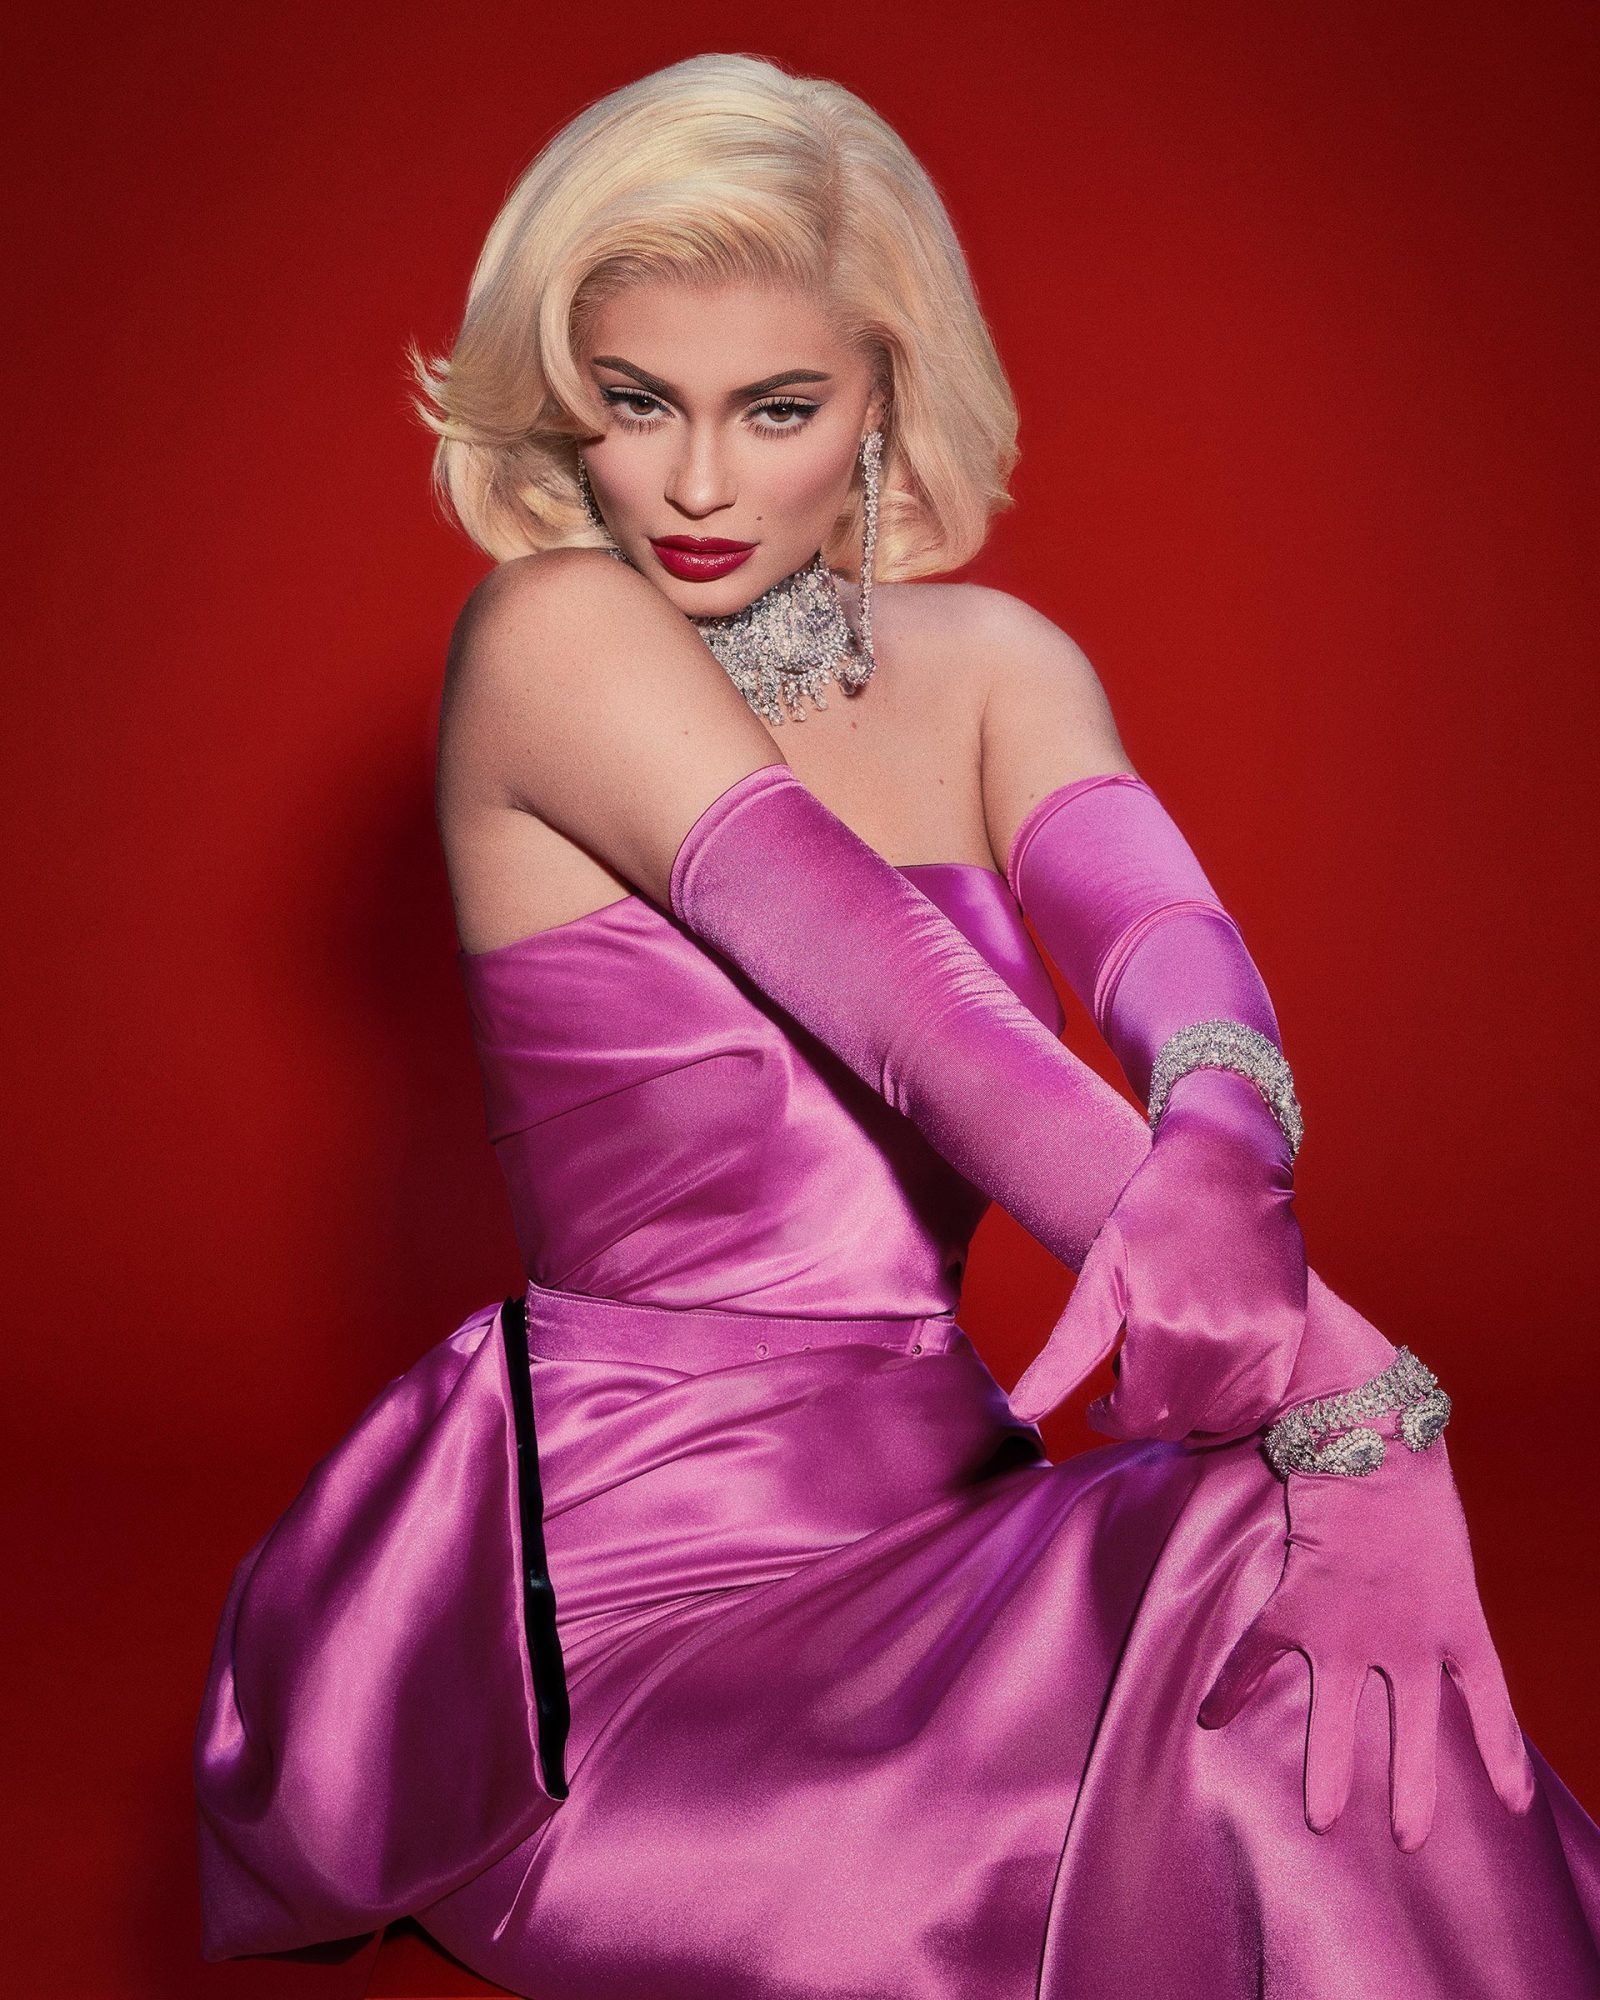 Kylie Jenner as Marilyn Monroe